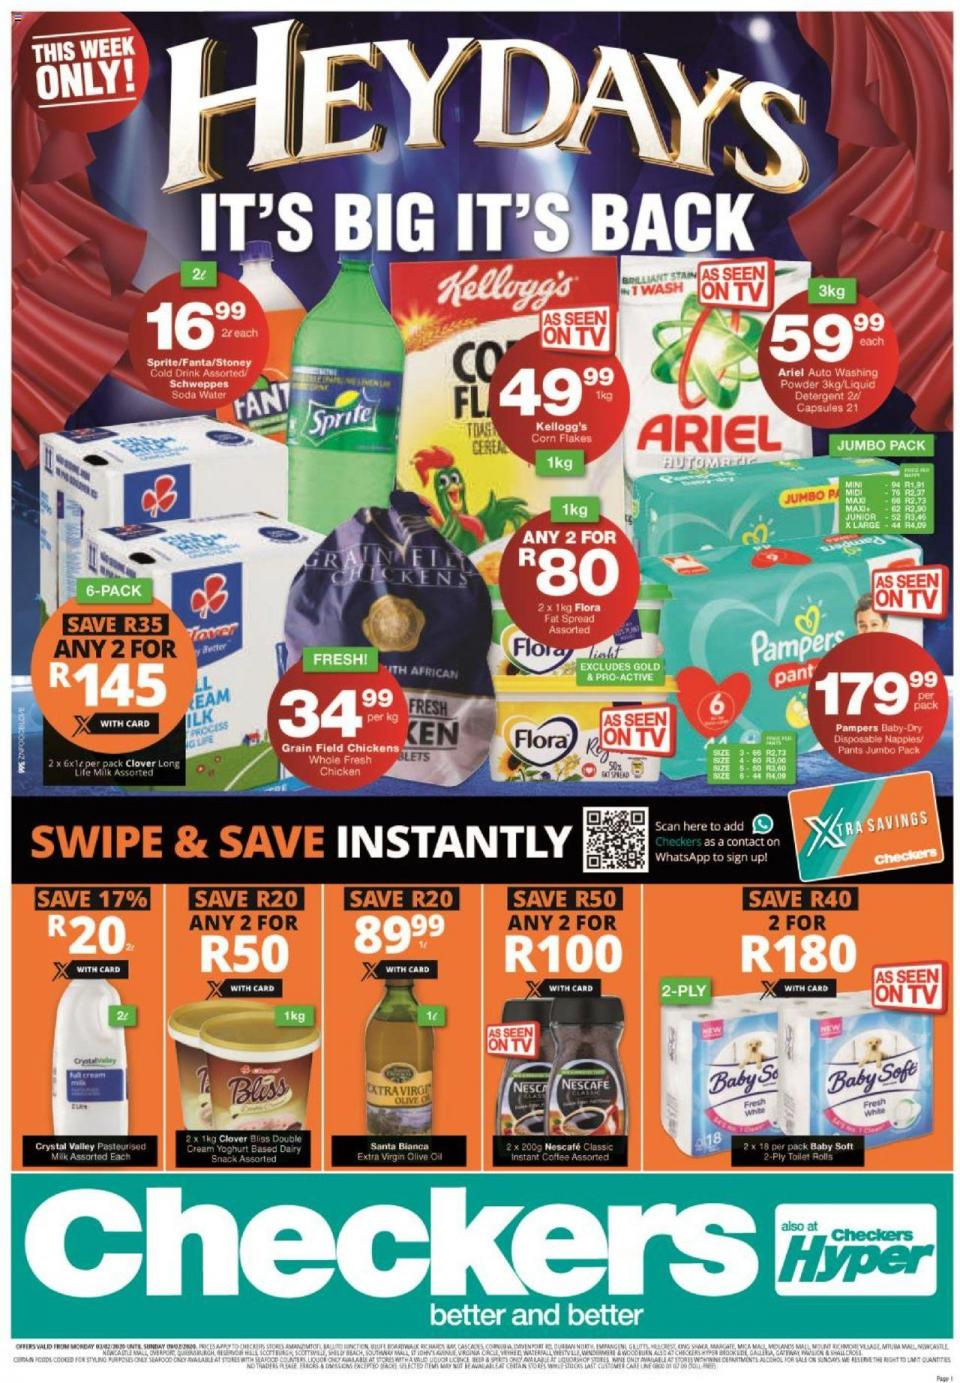 checkers specials l heydays promotion 3 february 2020